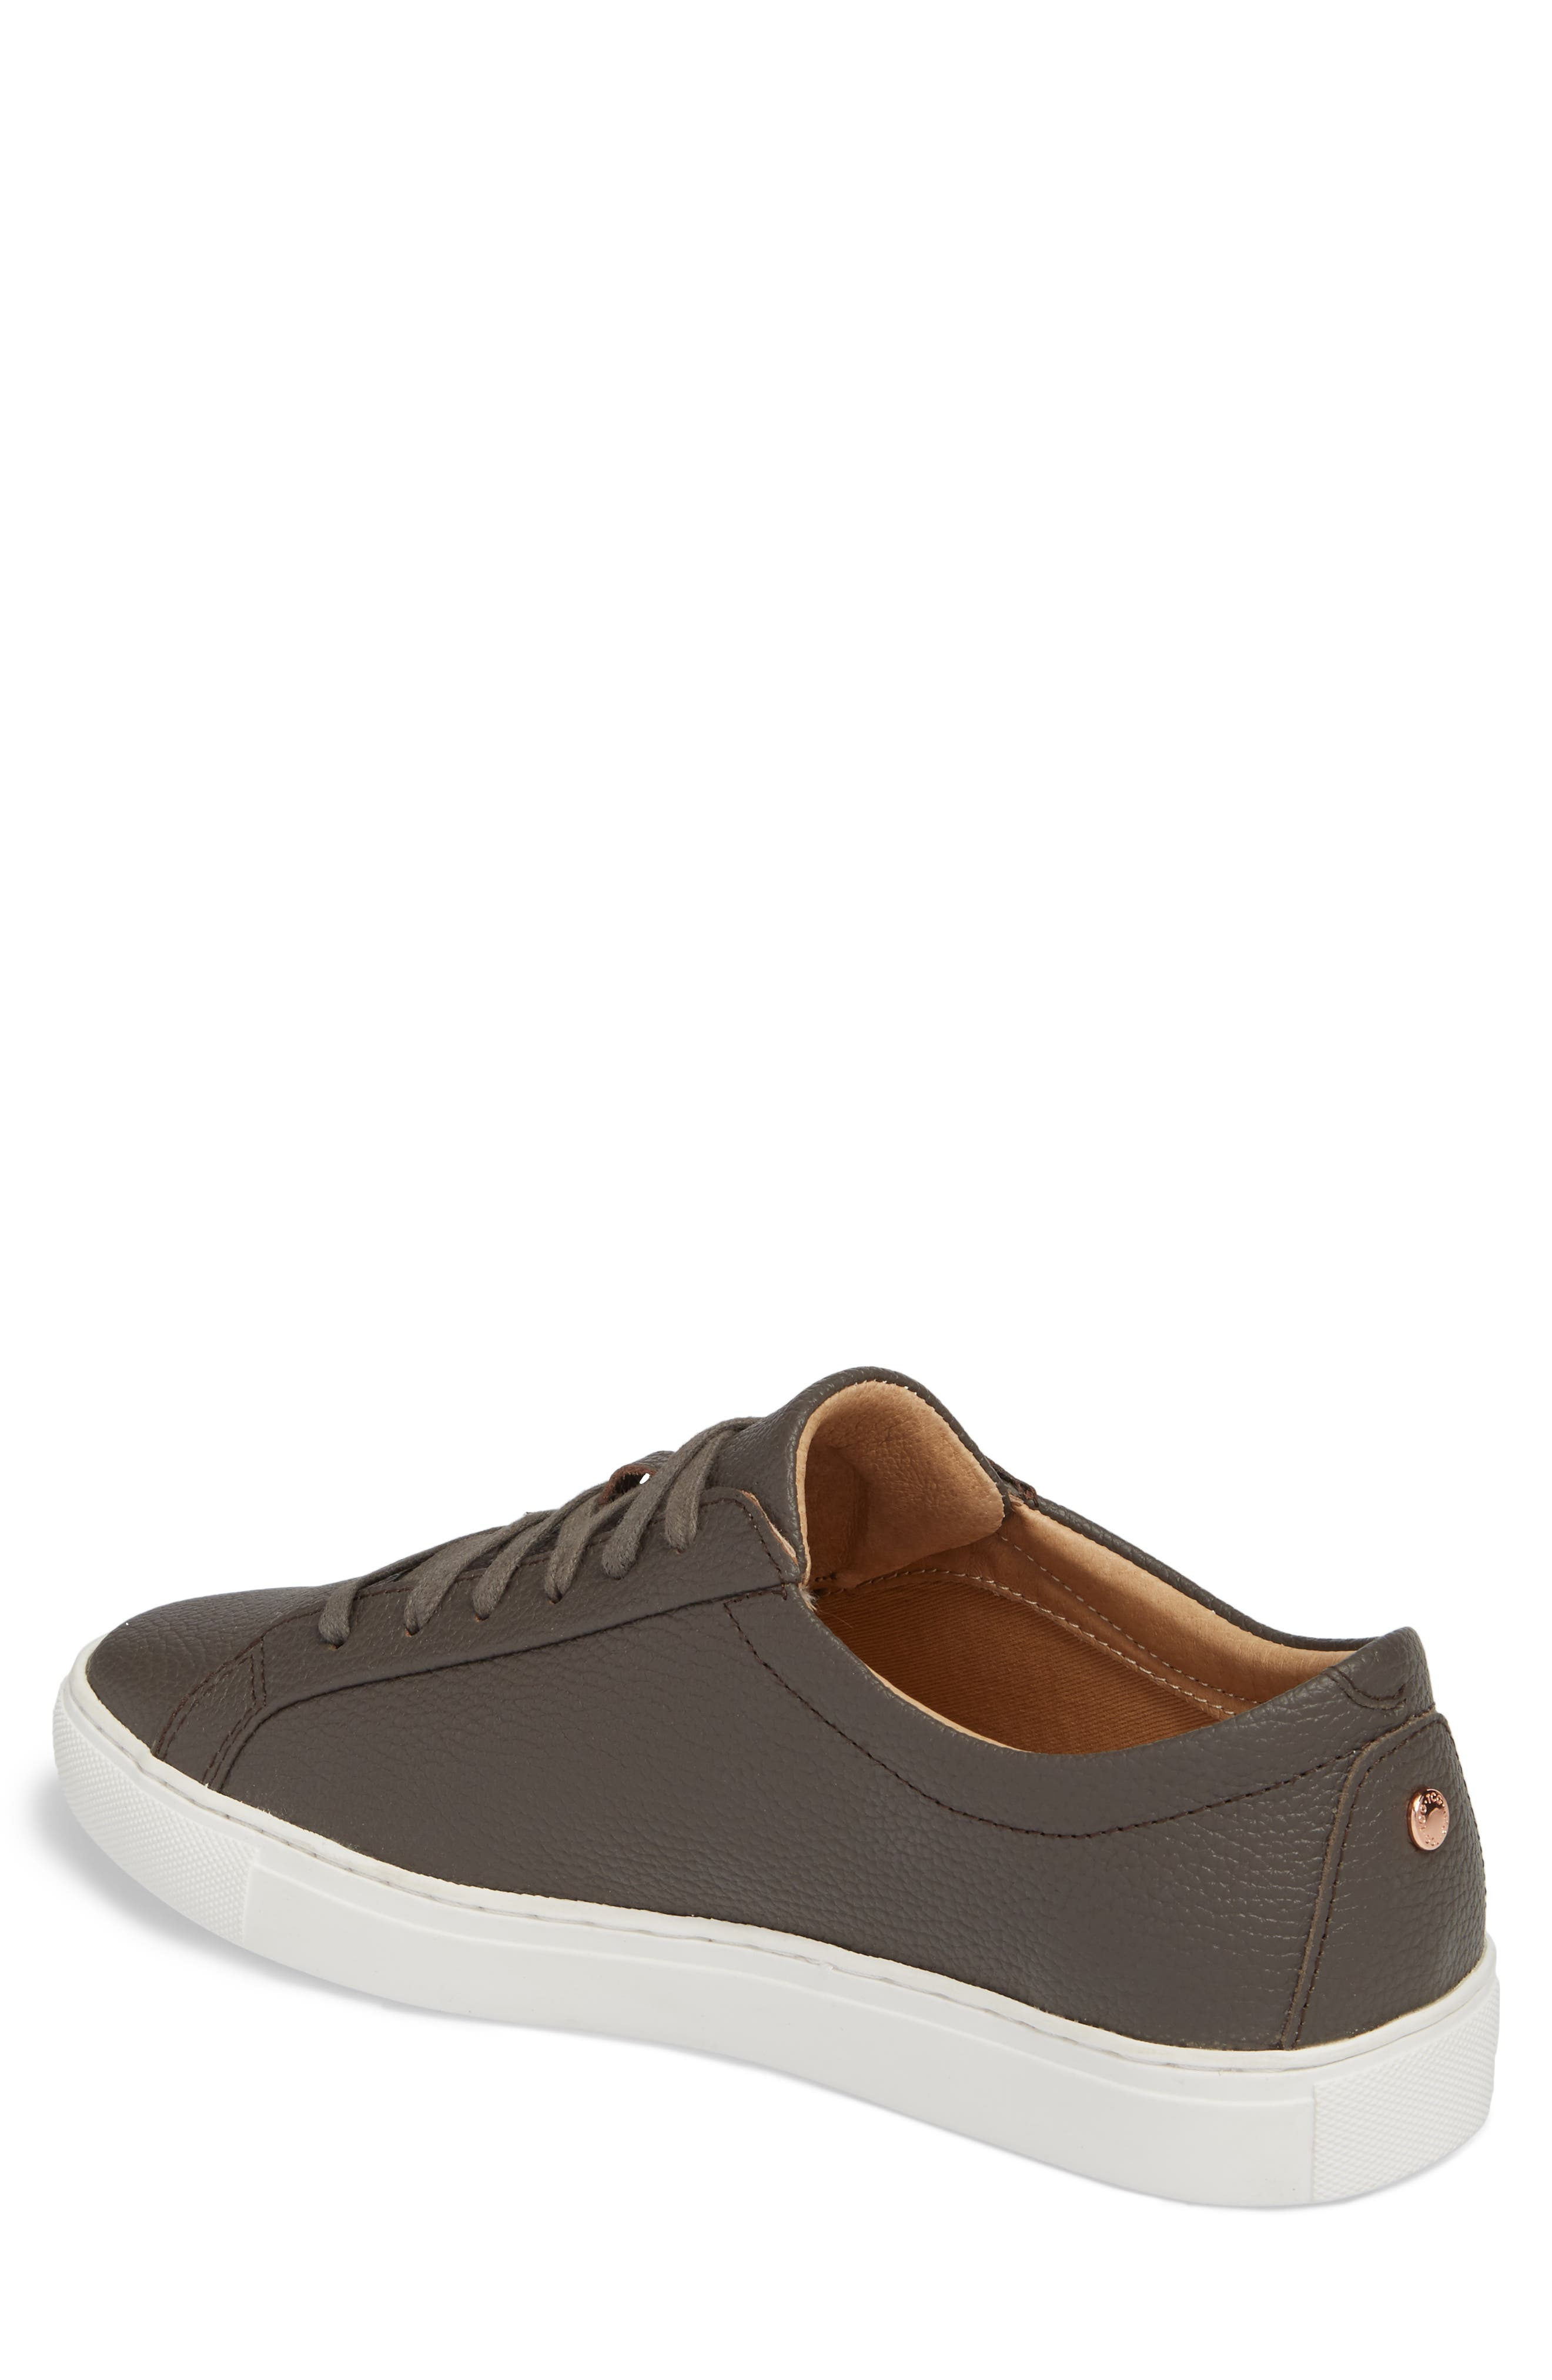 Kennedy Low Top Sneaker,                             Alternate thumbnail 2, color,                             Falcon Leather